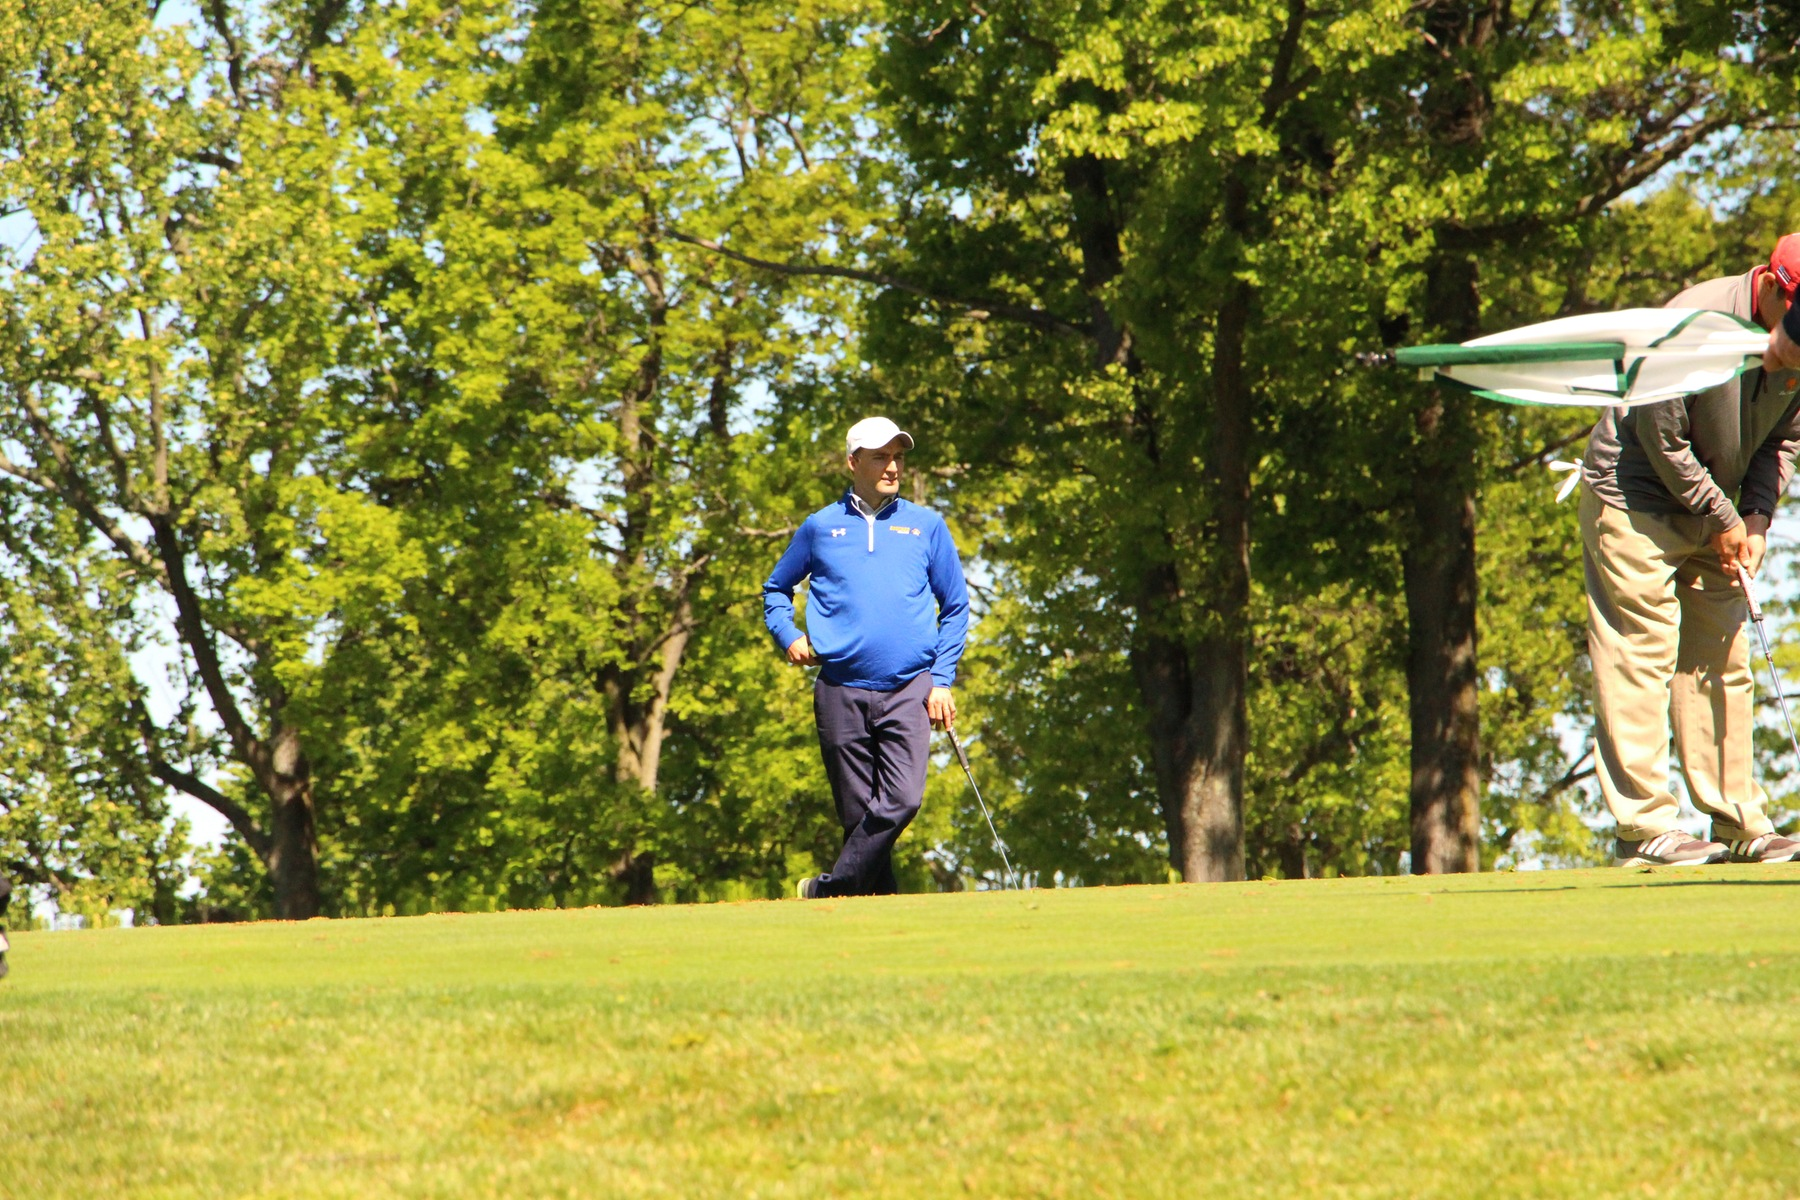 Head Coach Brown Prepares for Inaugural Golf Season by Maintaining a Competitive Edge